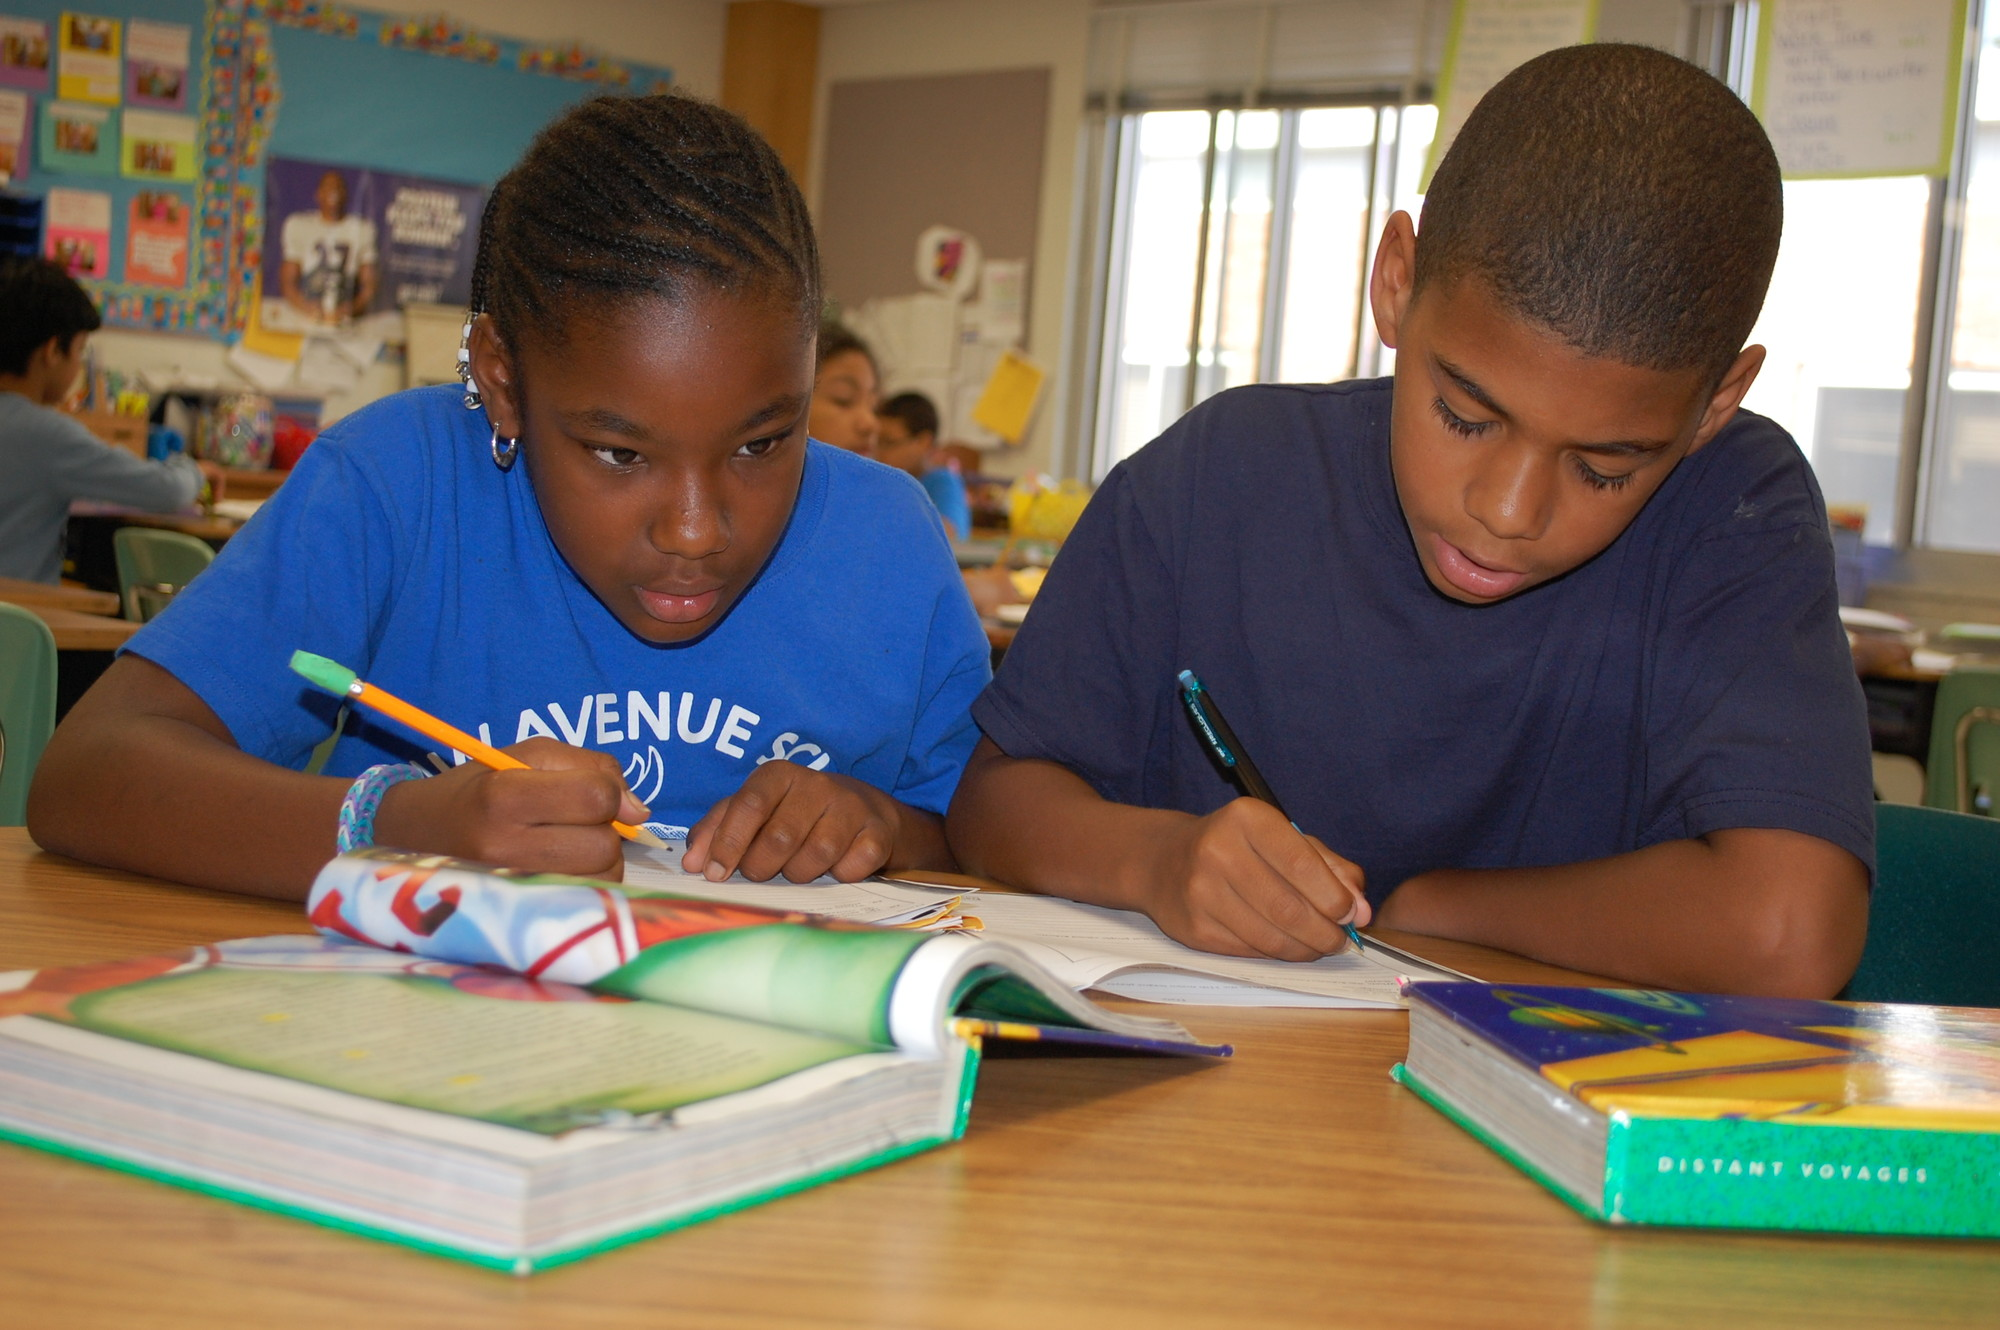 Fifth-graders Jade Jacques, left, and Justice Byrd were hard at work on Sept. 25, ensuring that the school keeps up its tradition of academic excellence.